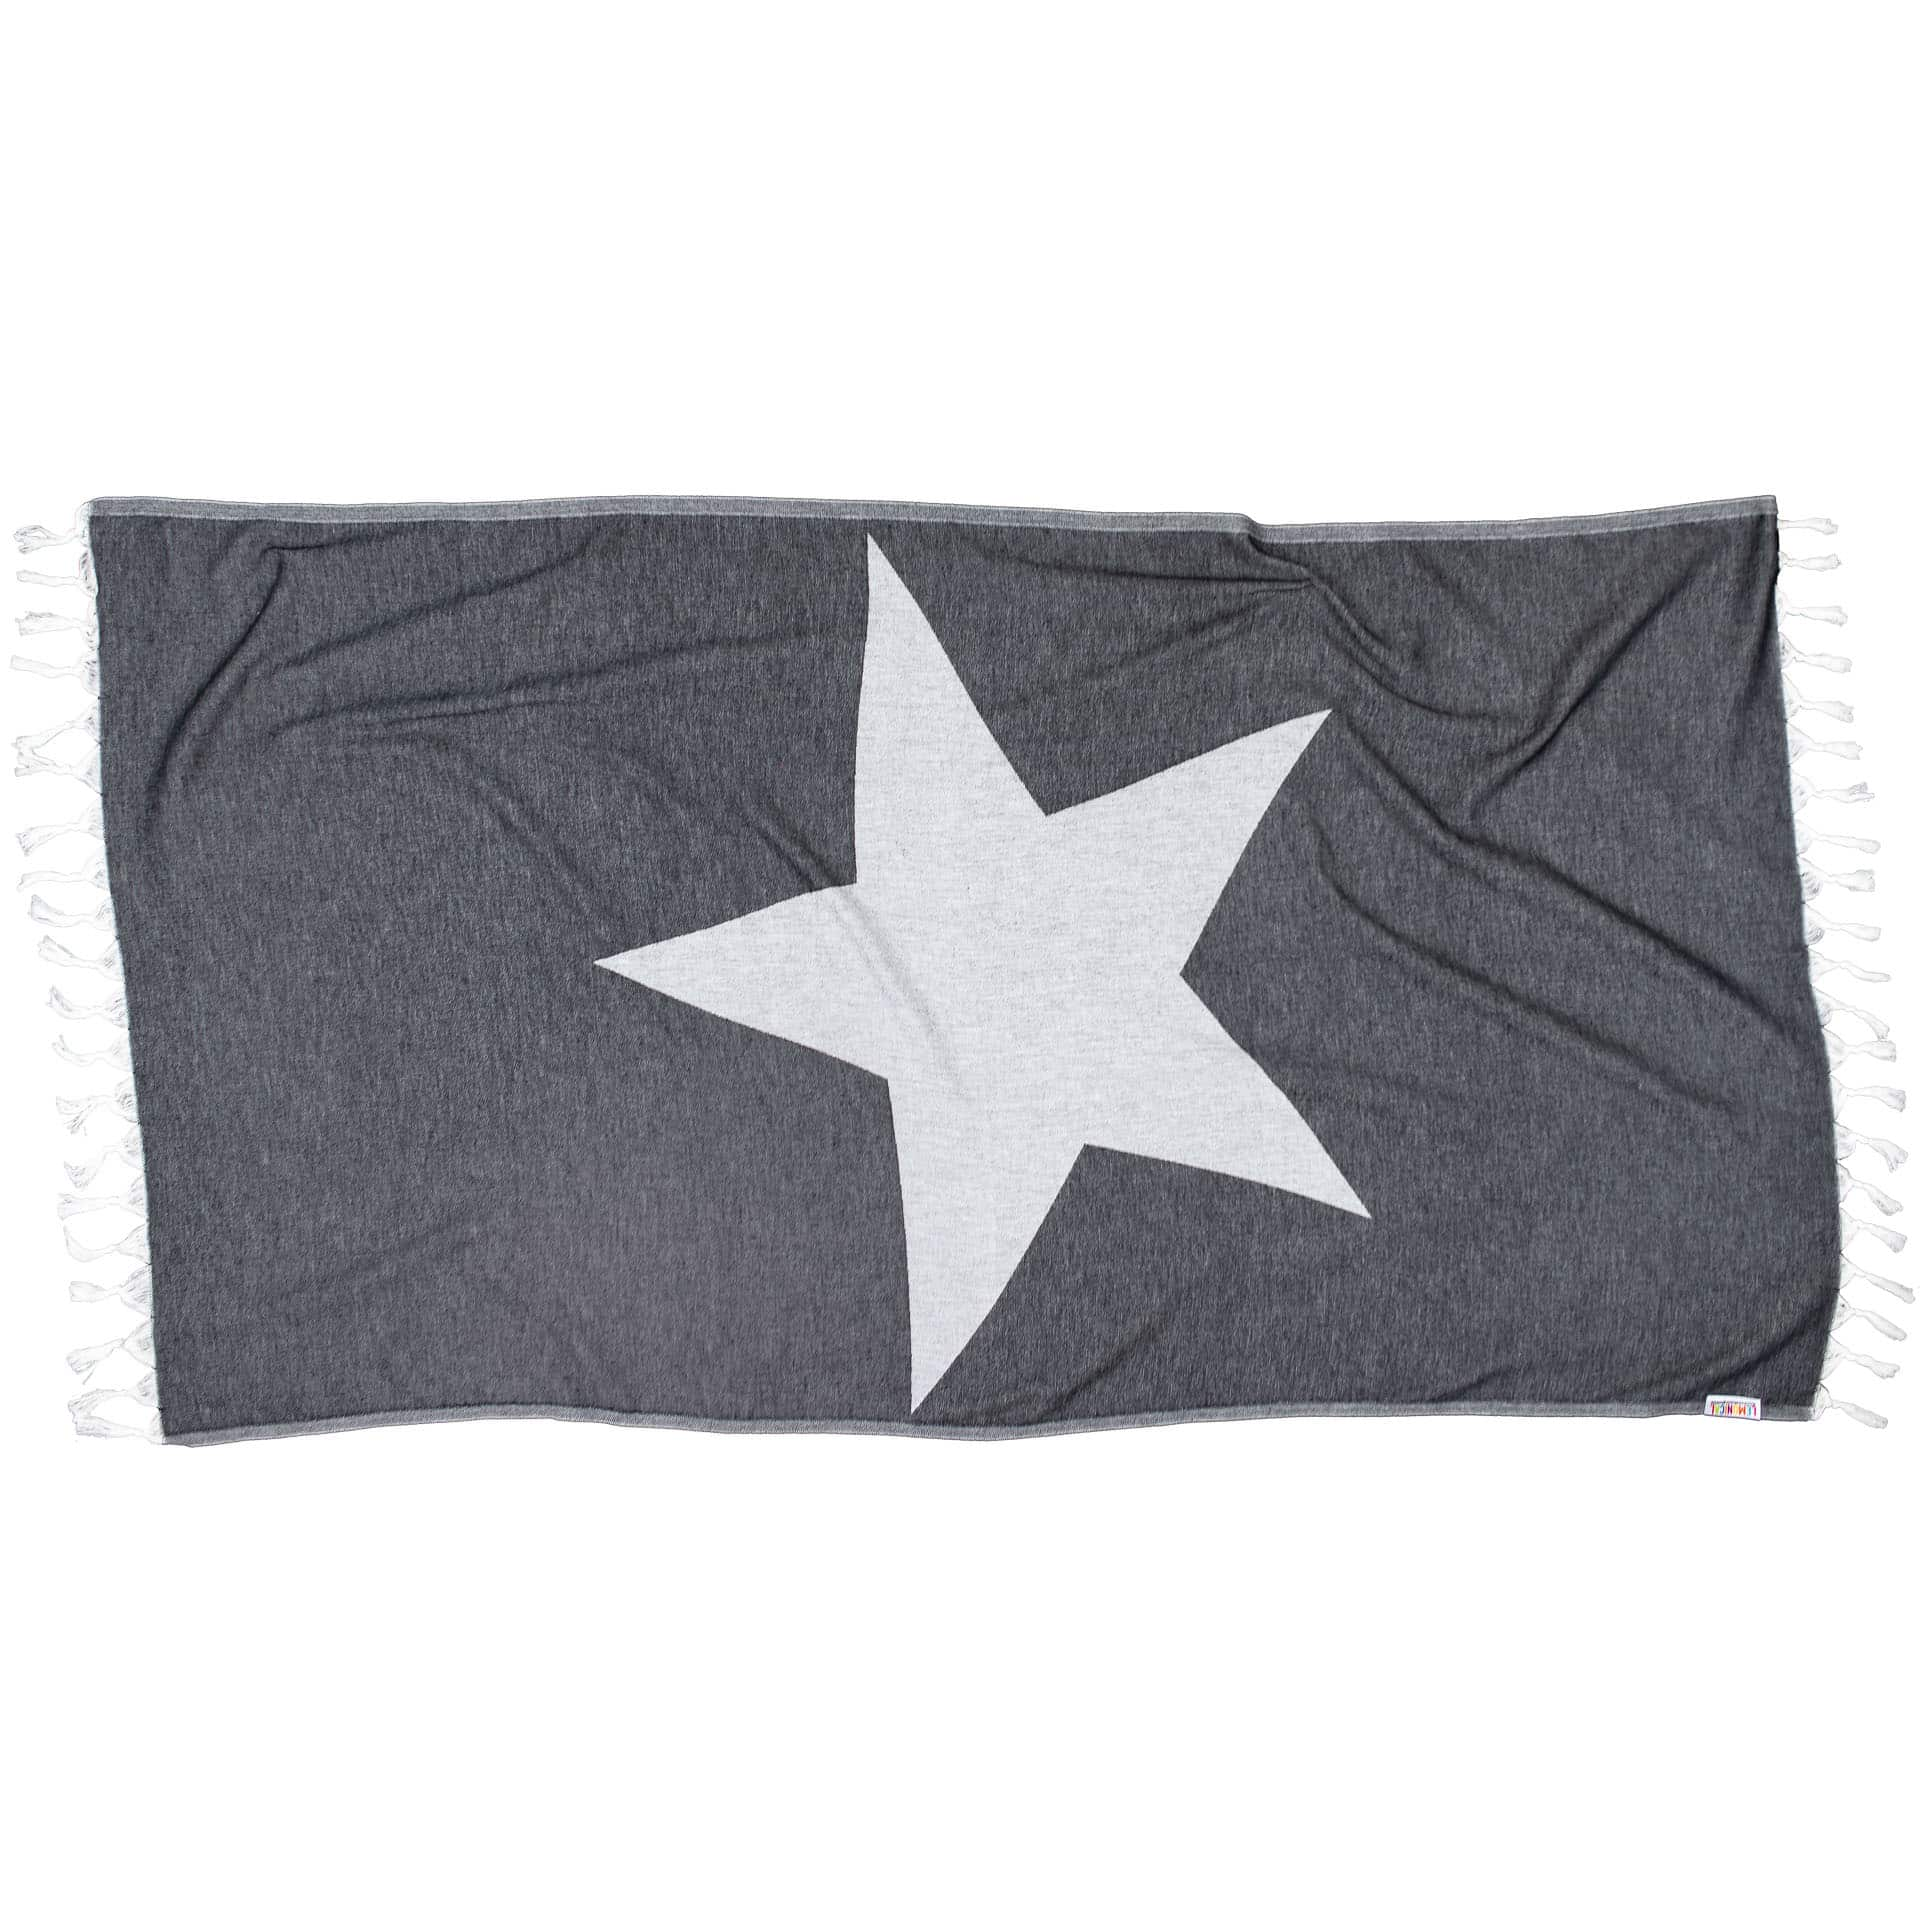 BLACK-STARFISH-Towel-Lemonical-1